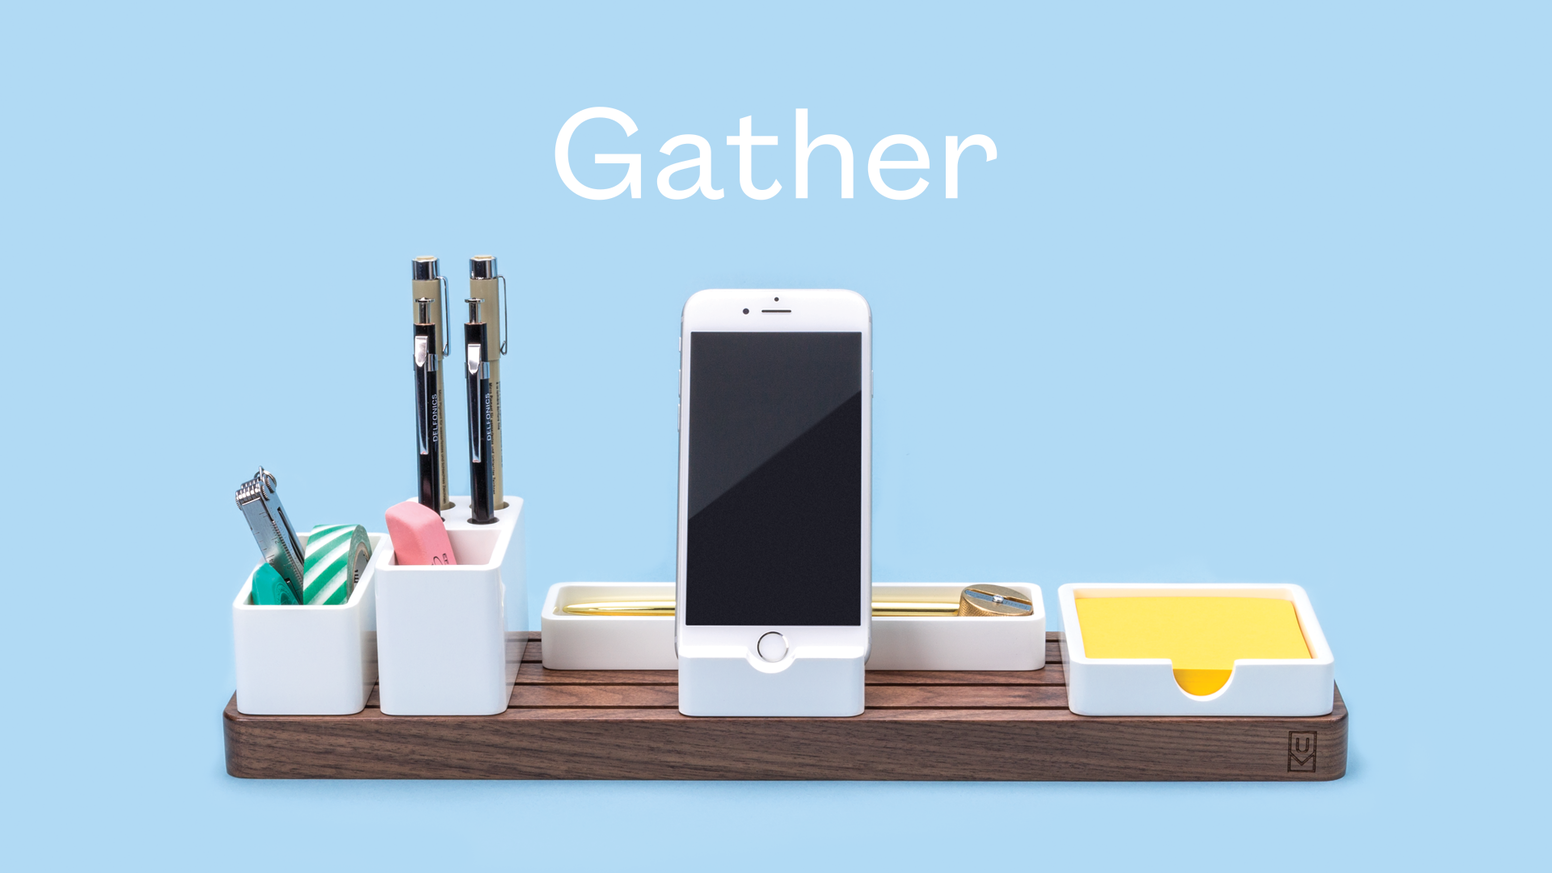 Gather adapts to your workspace and workflow to make sure the tools you need are always within reach.